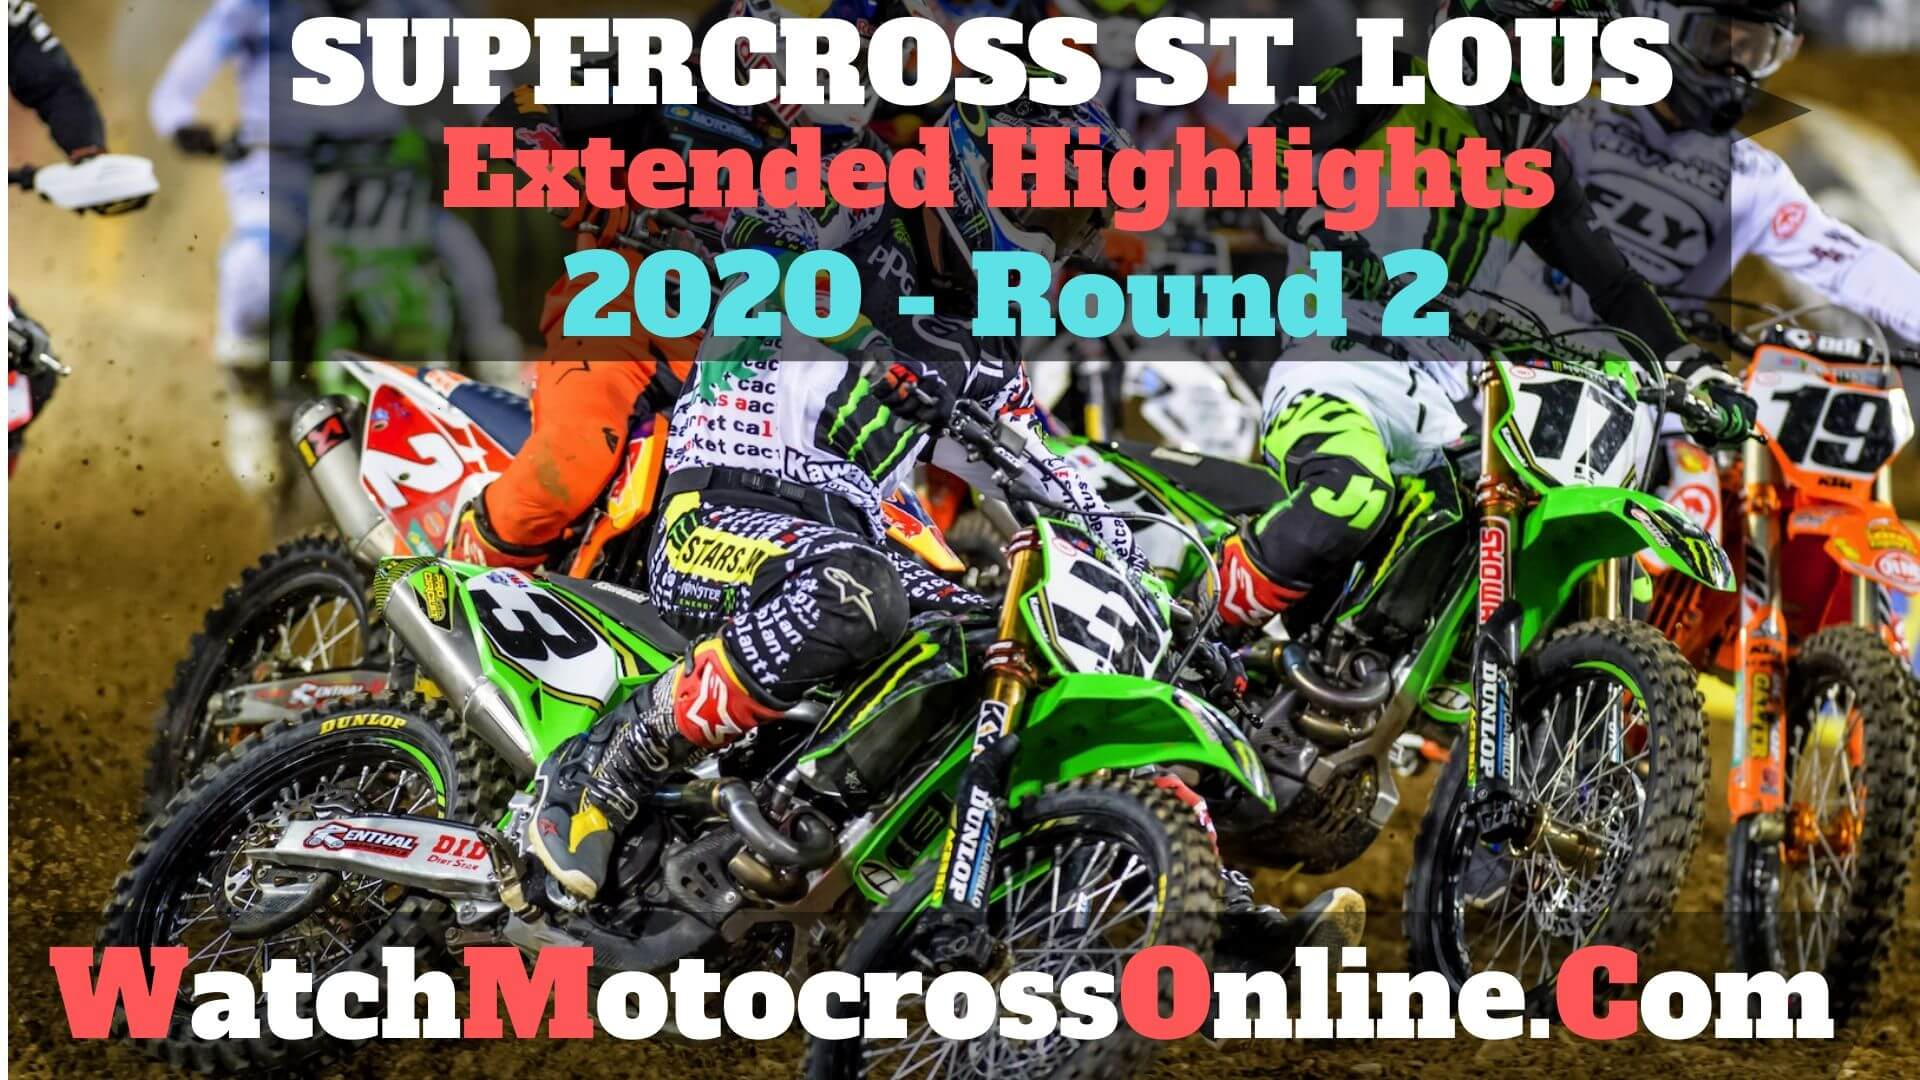 St Louis AMA Supercross 2020 Extended Highlights